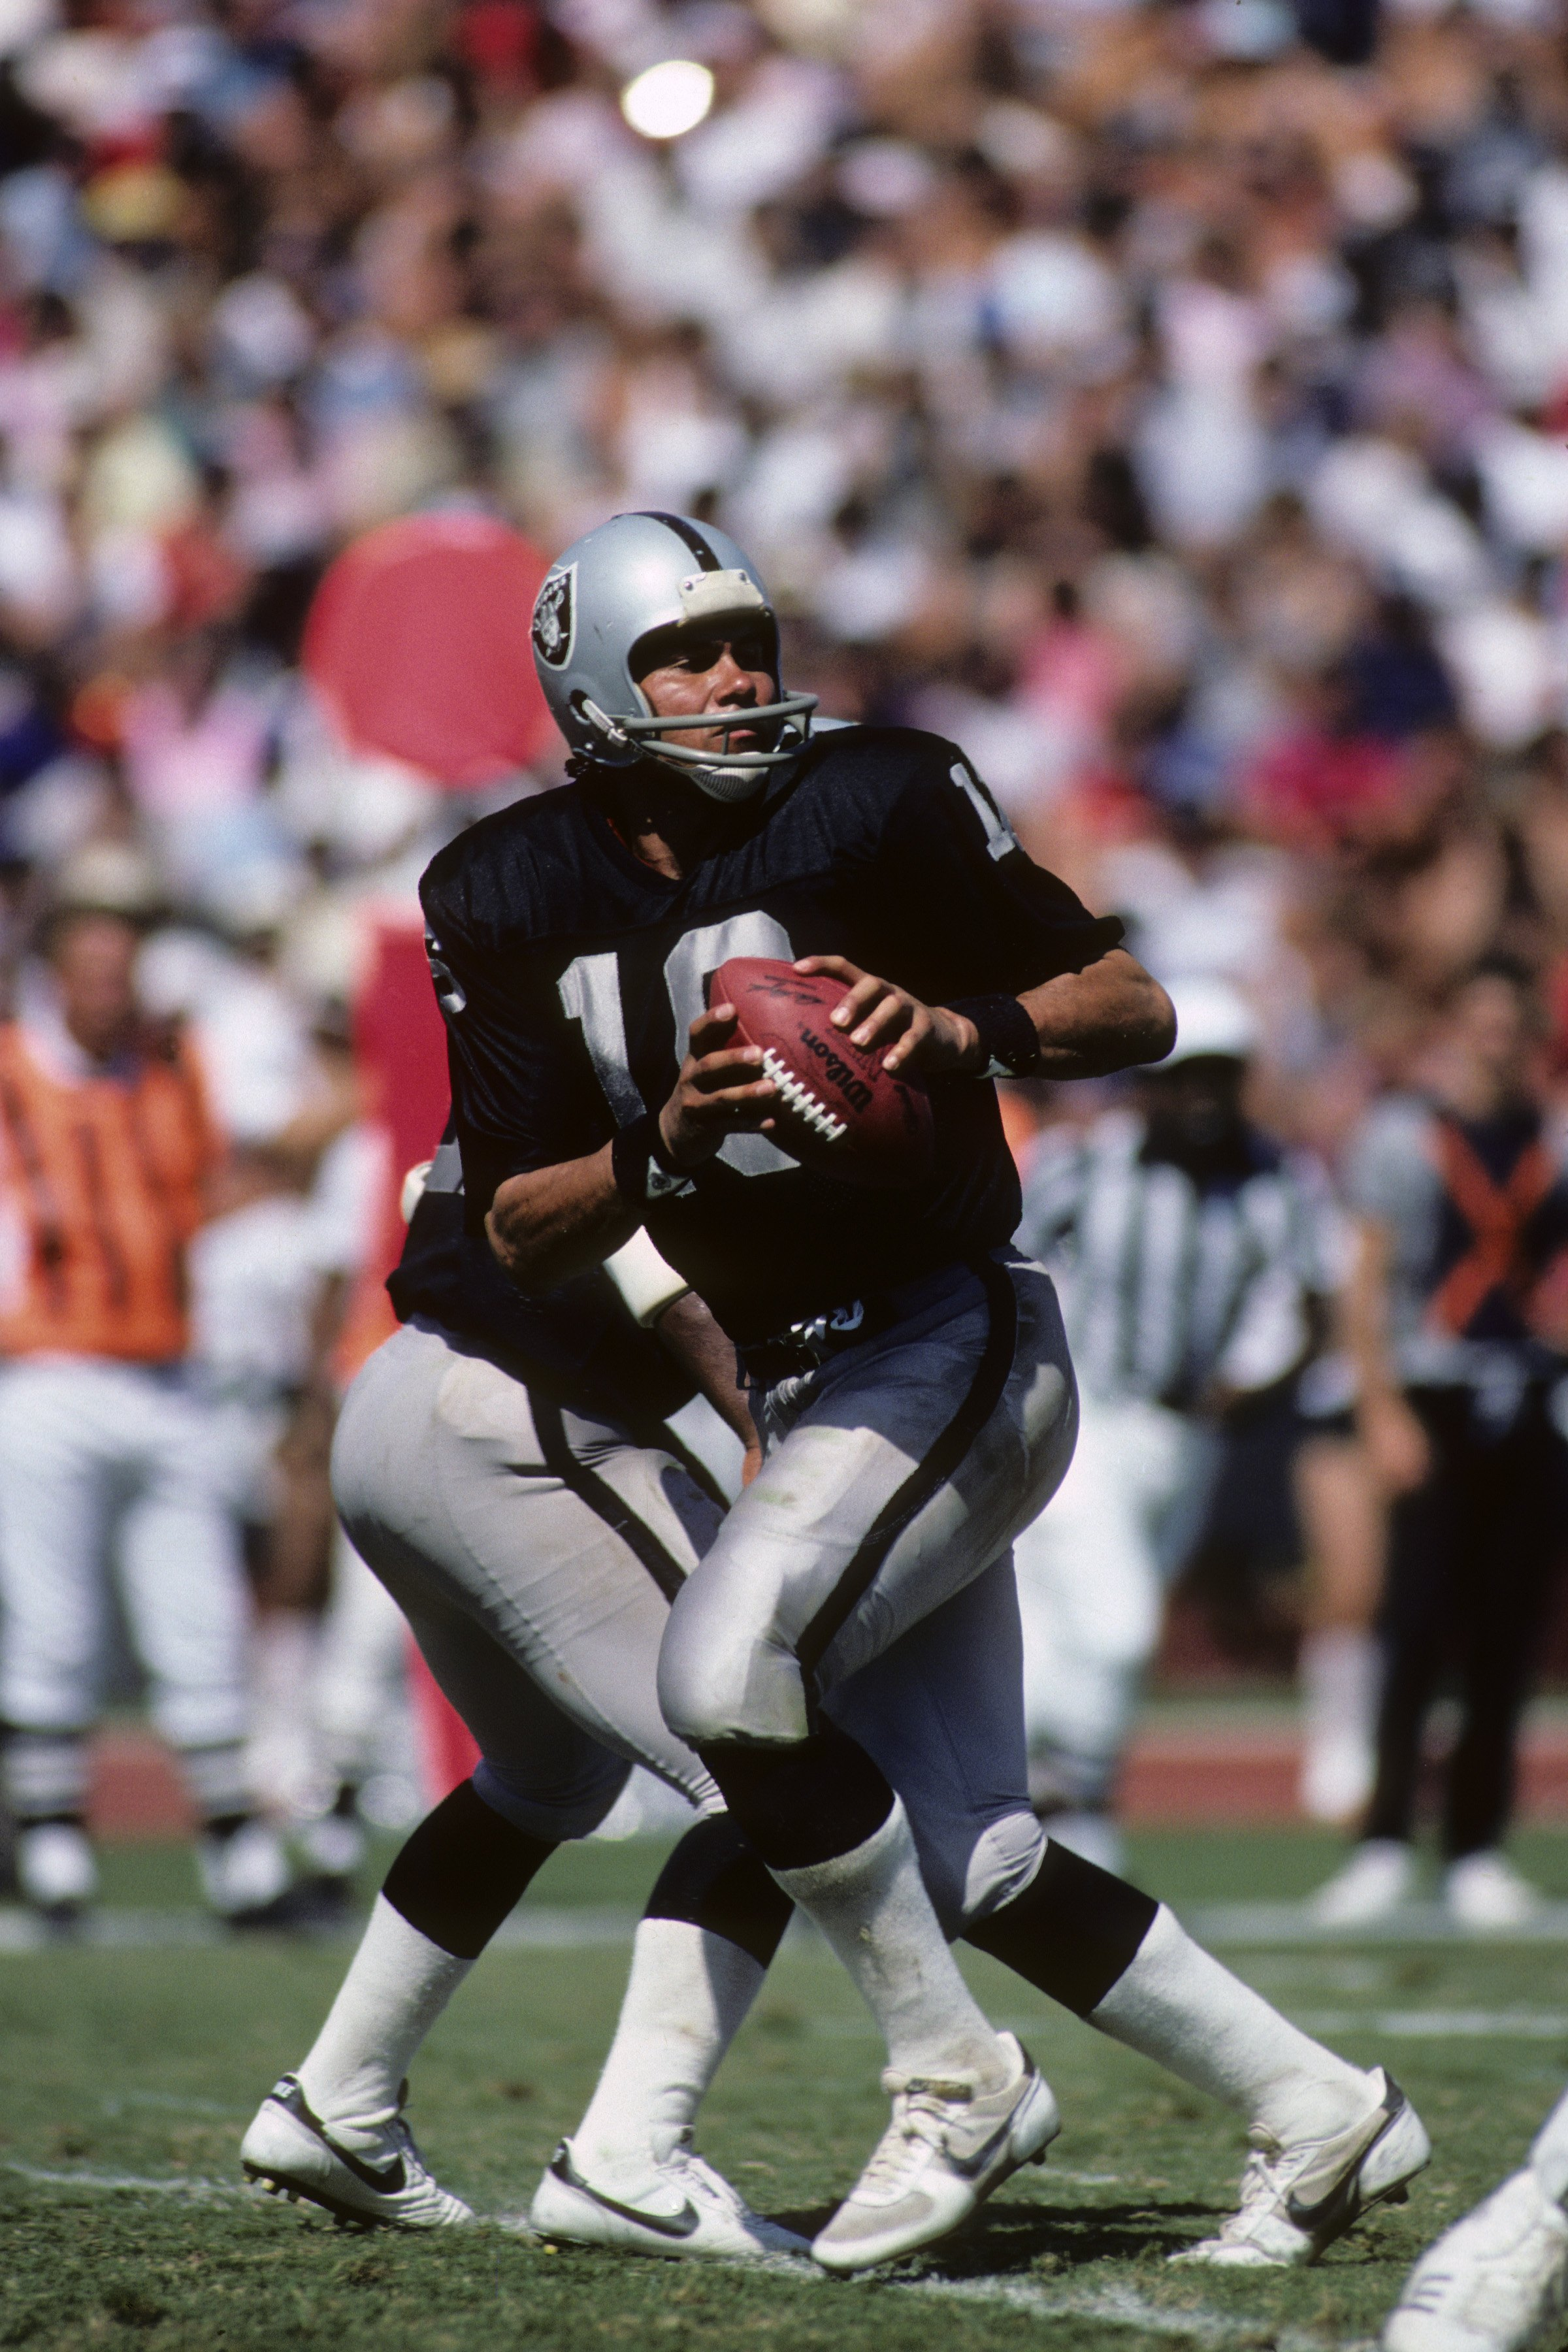 LOS ANGELES - SEPTEMBER 22:  Quarterback Jim Plunkett #16 of the Los Angeles Raiders drops back to pass during the game against the San Francisco 49ers at the Los Angeles Memorial Coliseum on September 22, 1985 in Los Angeles, California.  The 49ers won 3